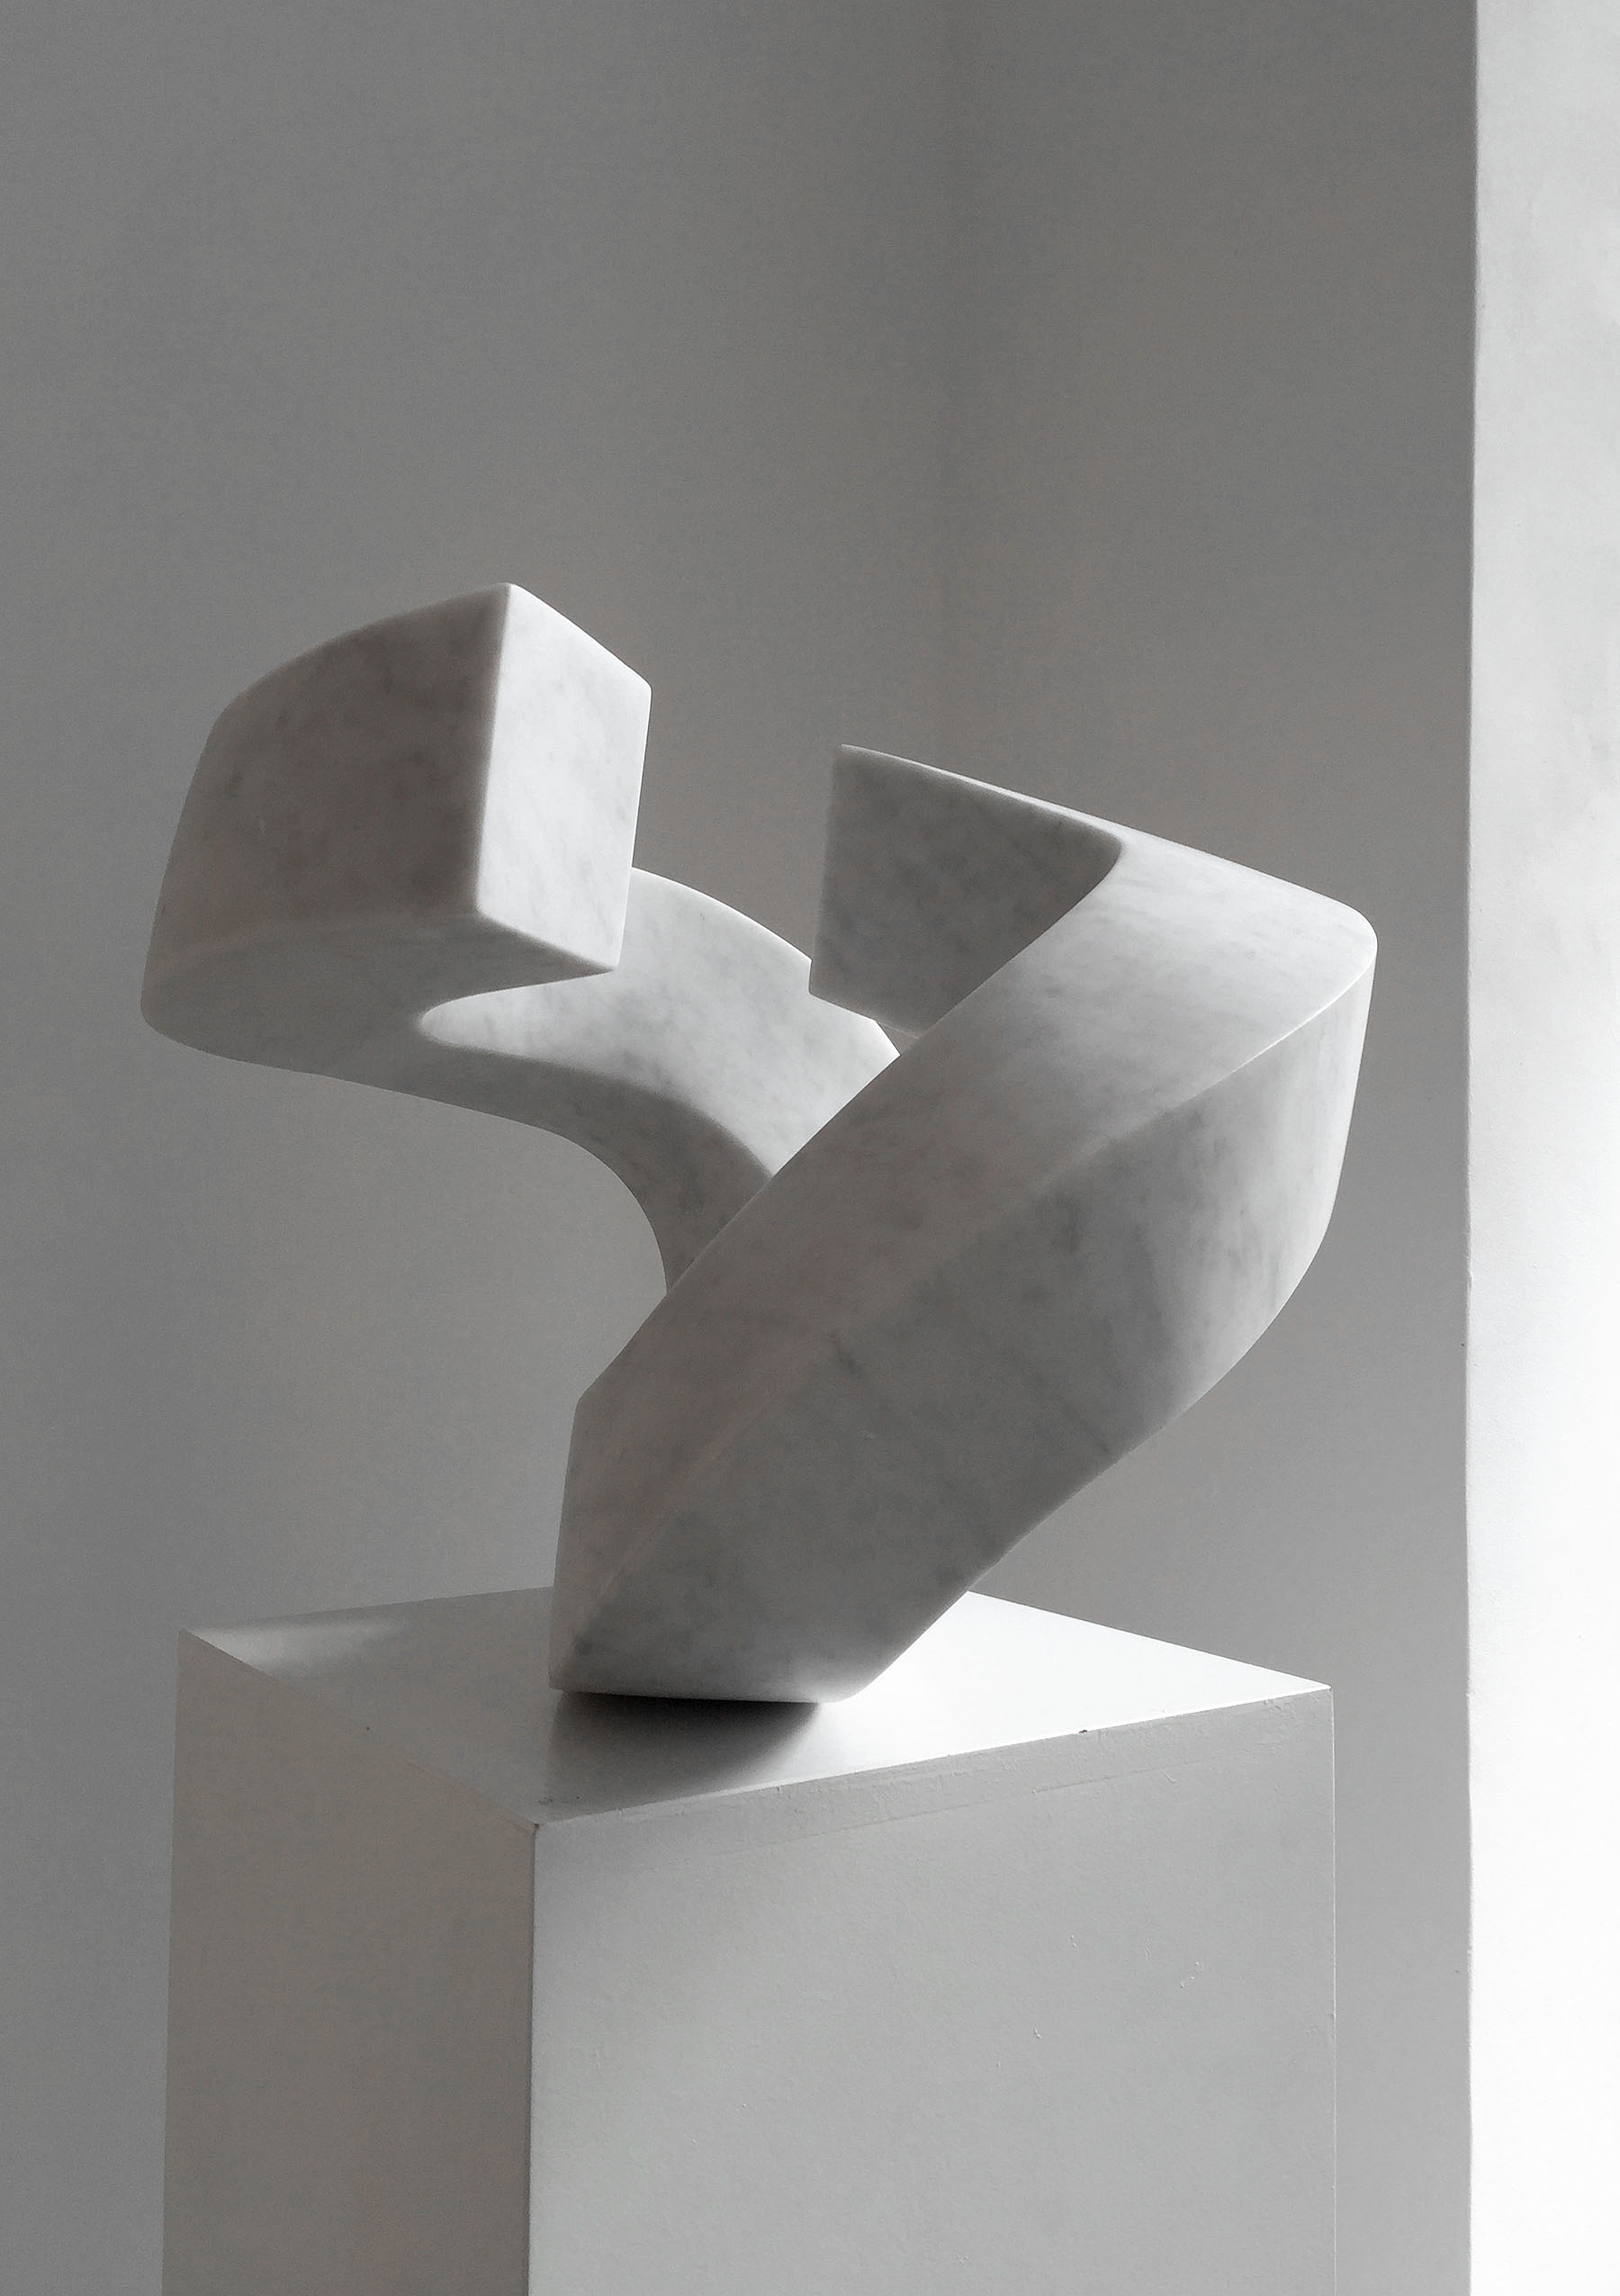 KOMPOSITION 7, 2010, Carrara Marmor, 43 x 43 x 33 cm